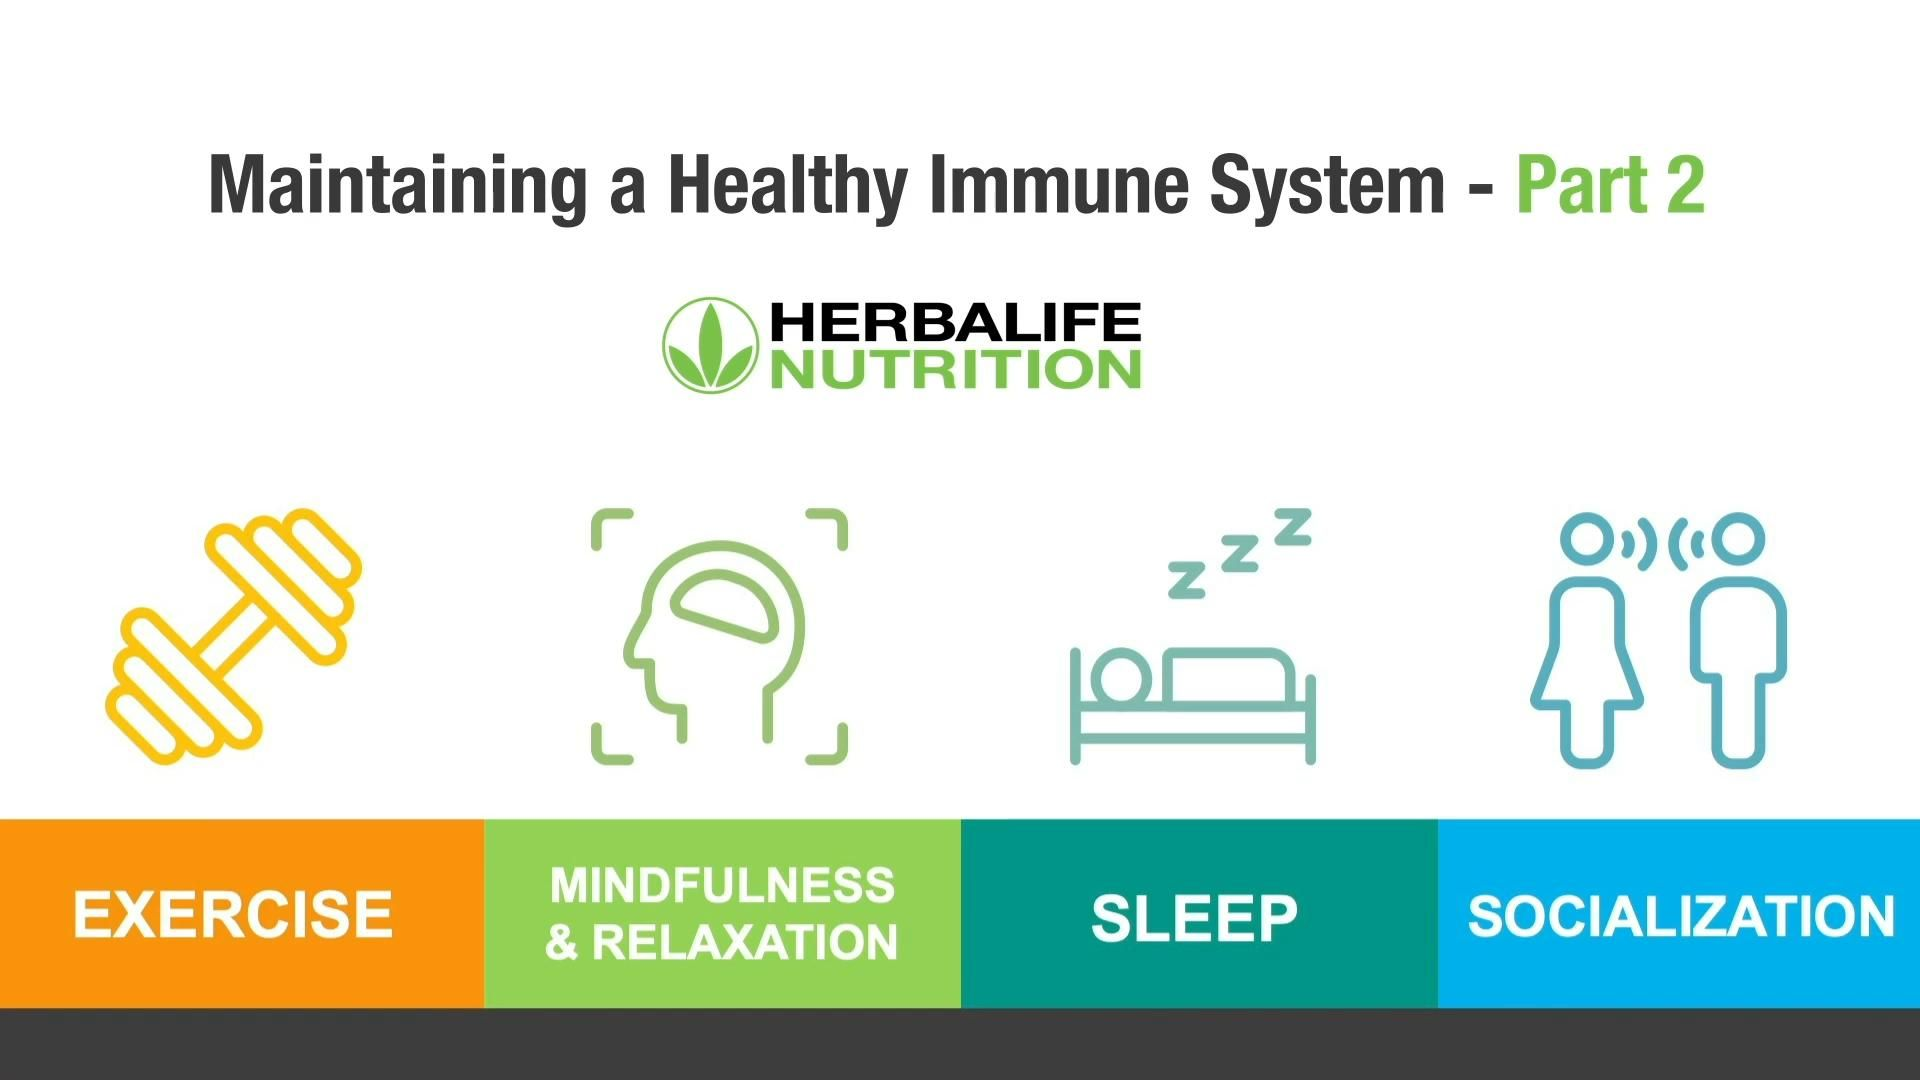 Maintaining a Healthy Immune System - Part 2